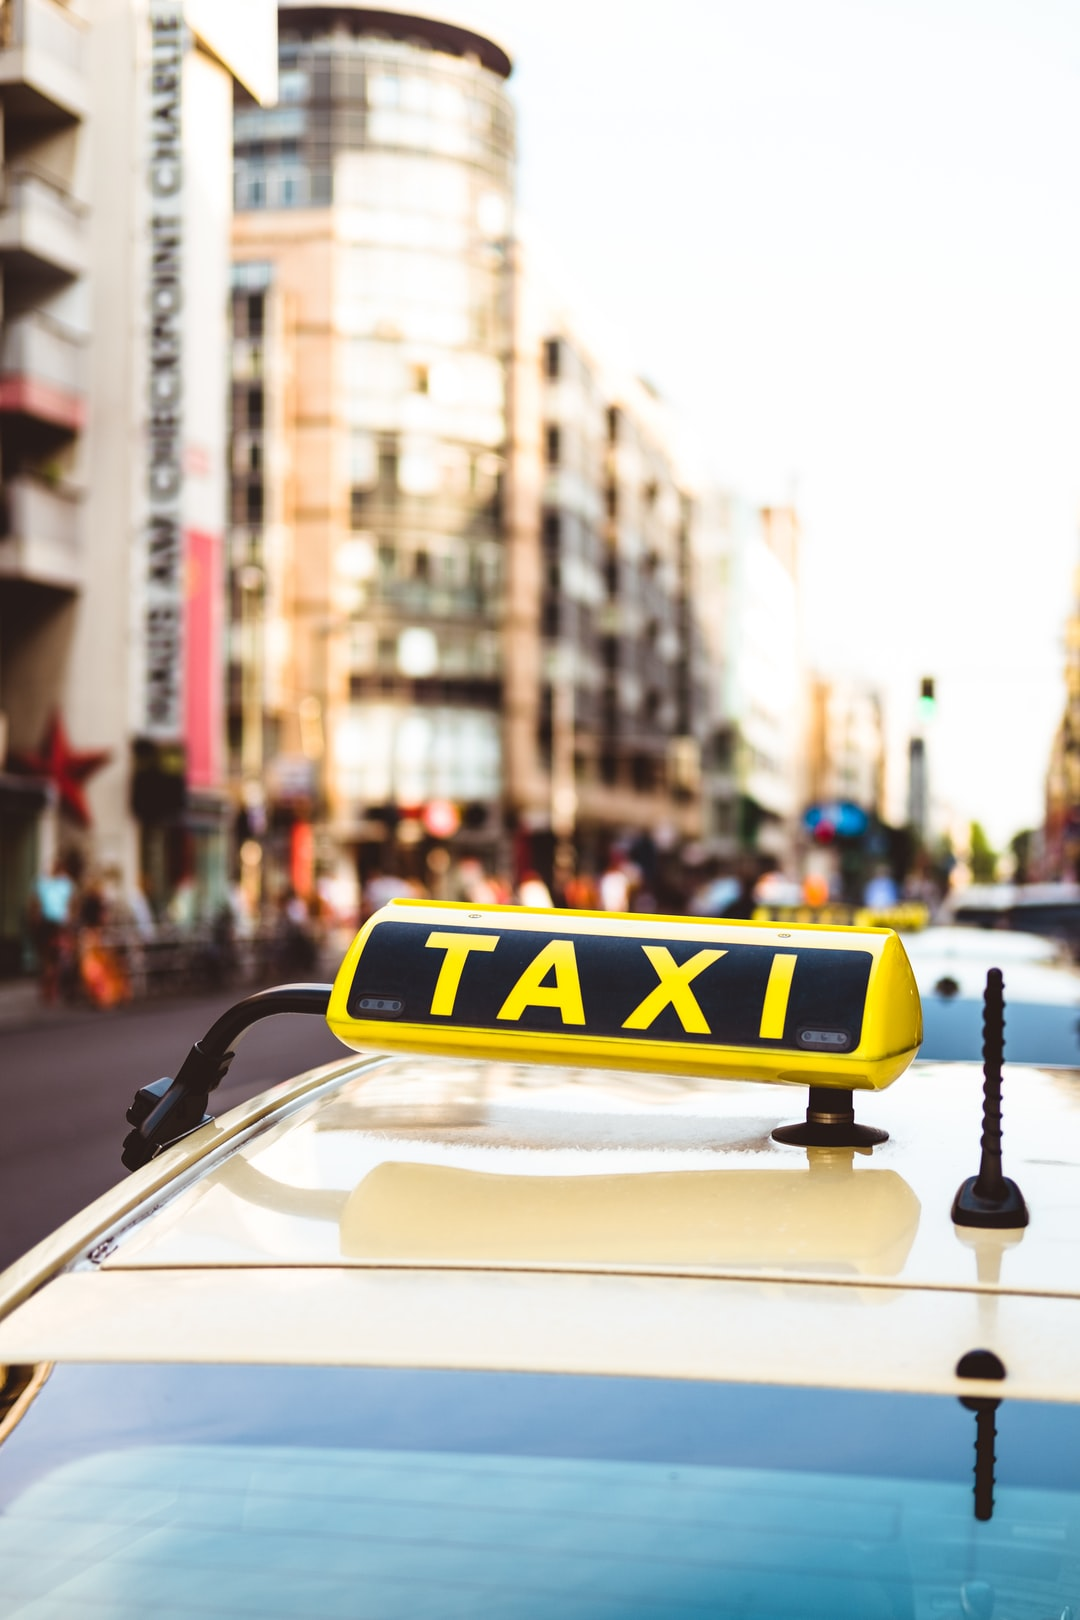 Except of the awful colors of the taxi's in Berlin, I really like that there almost all the same and all connected by the colors and taxi signs.